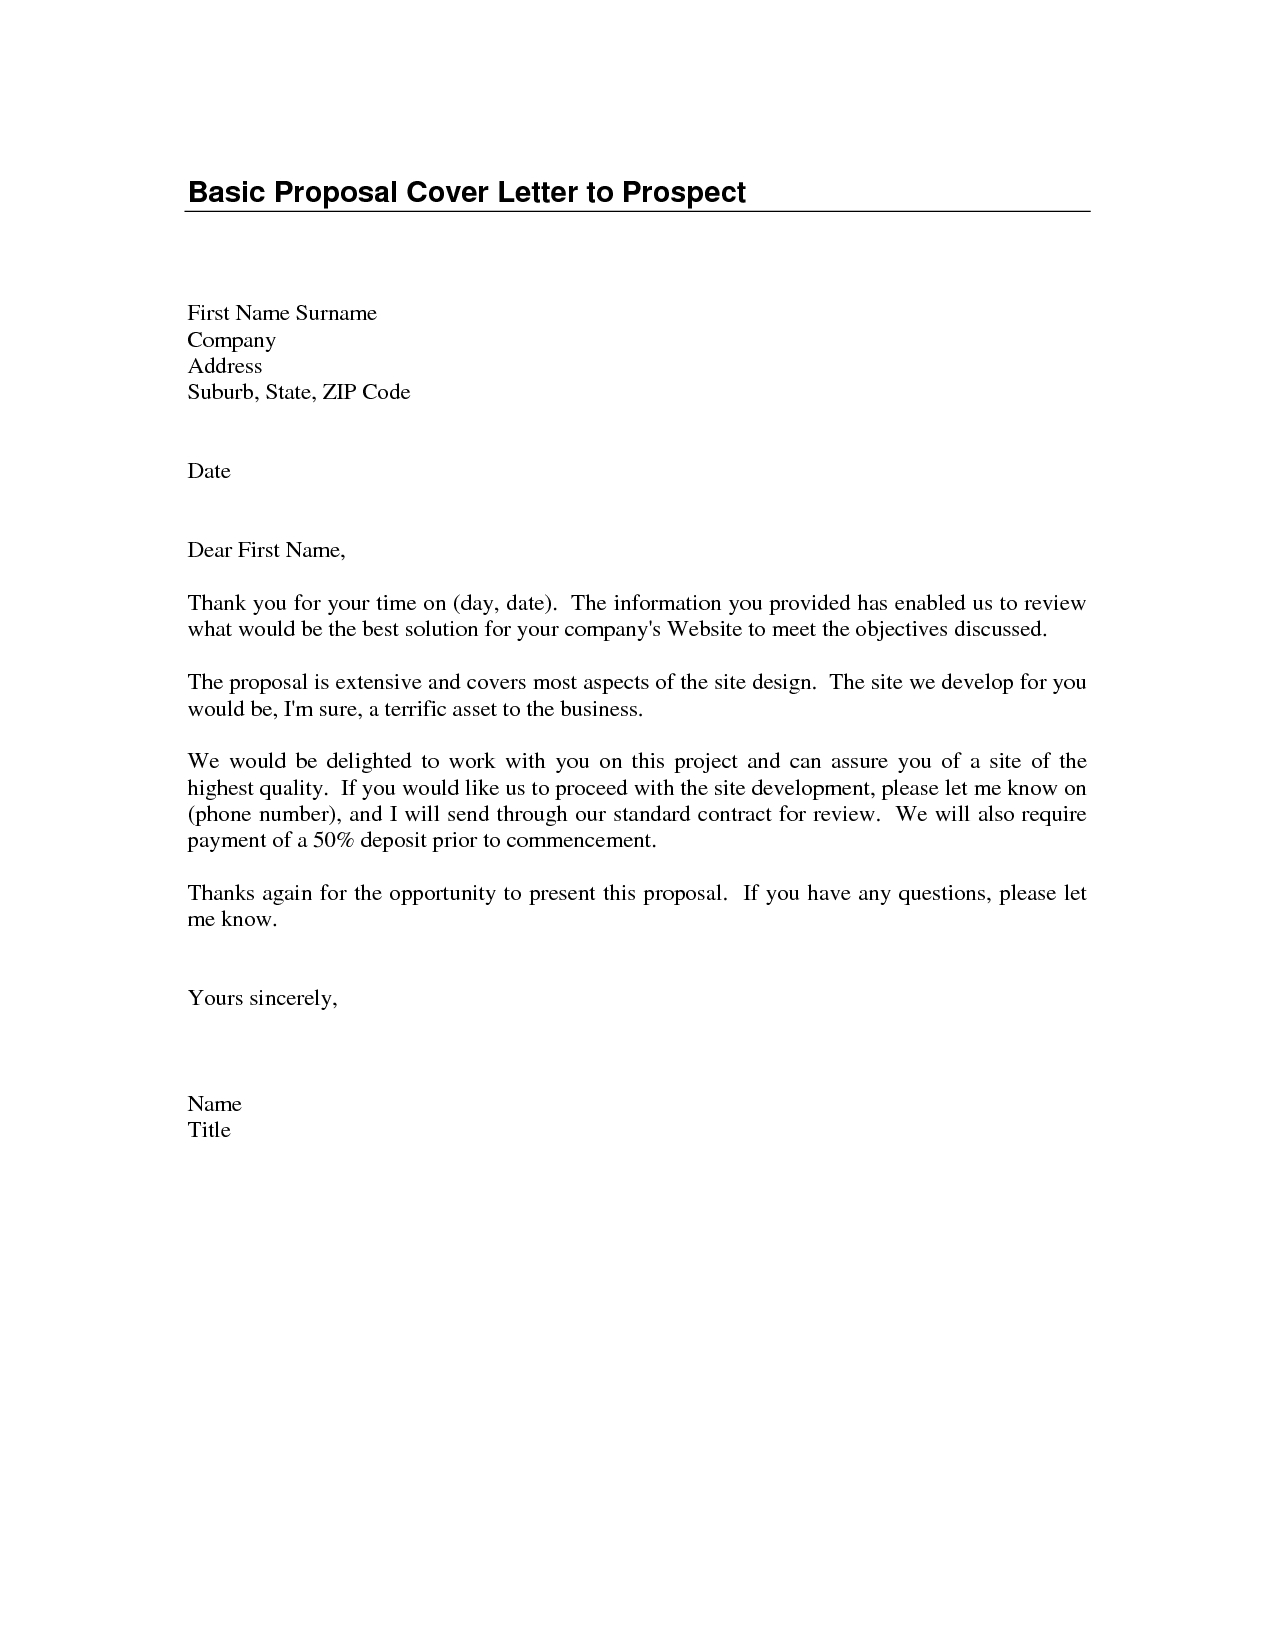 Cute Cover Letter Template - Basic Cover Letter Fashionellaconstance